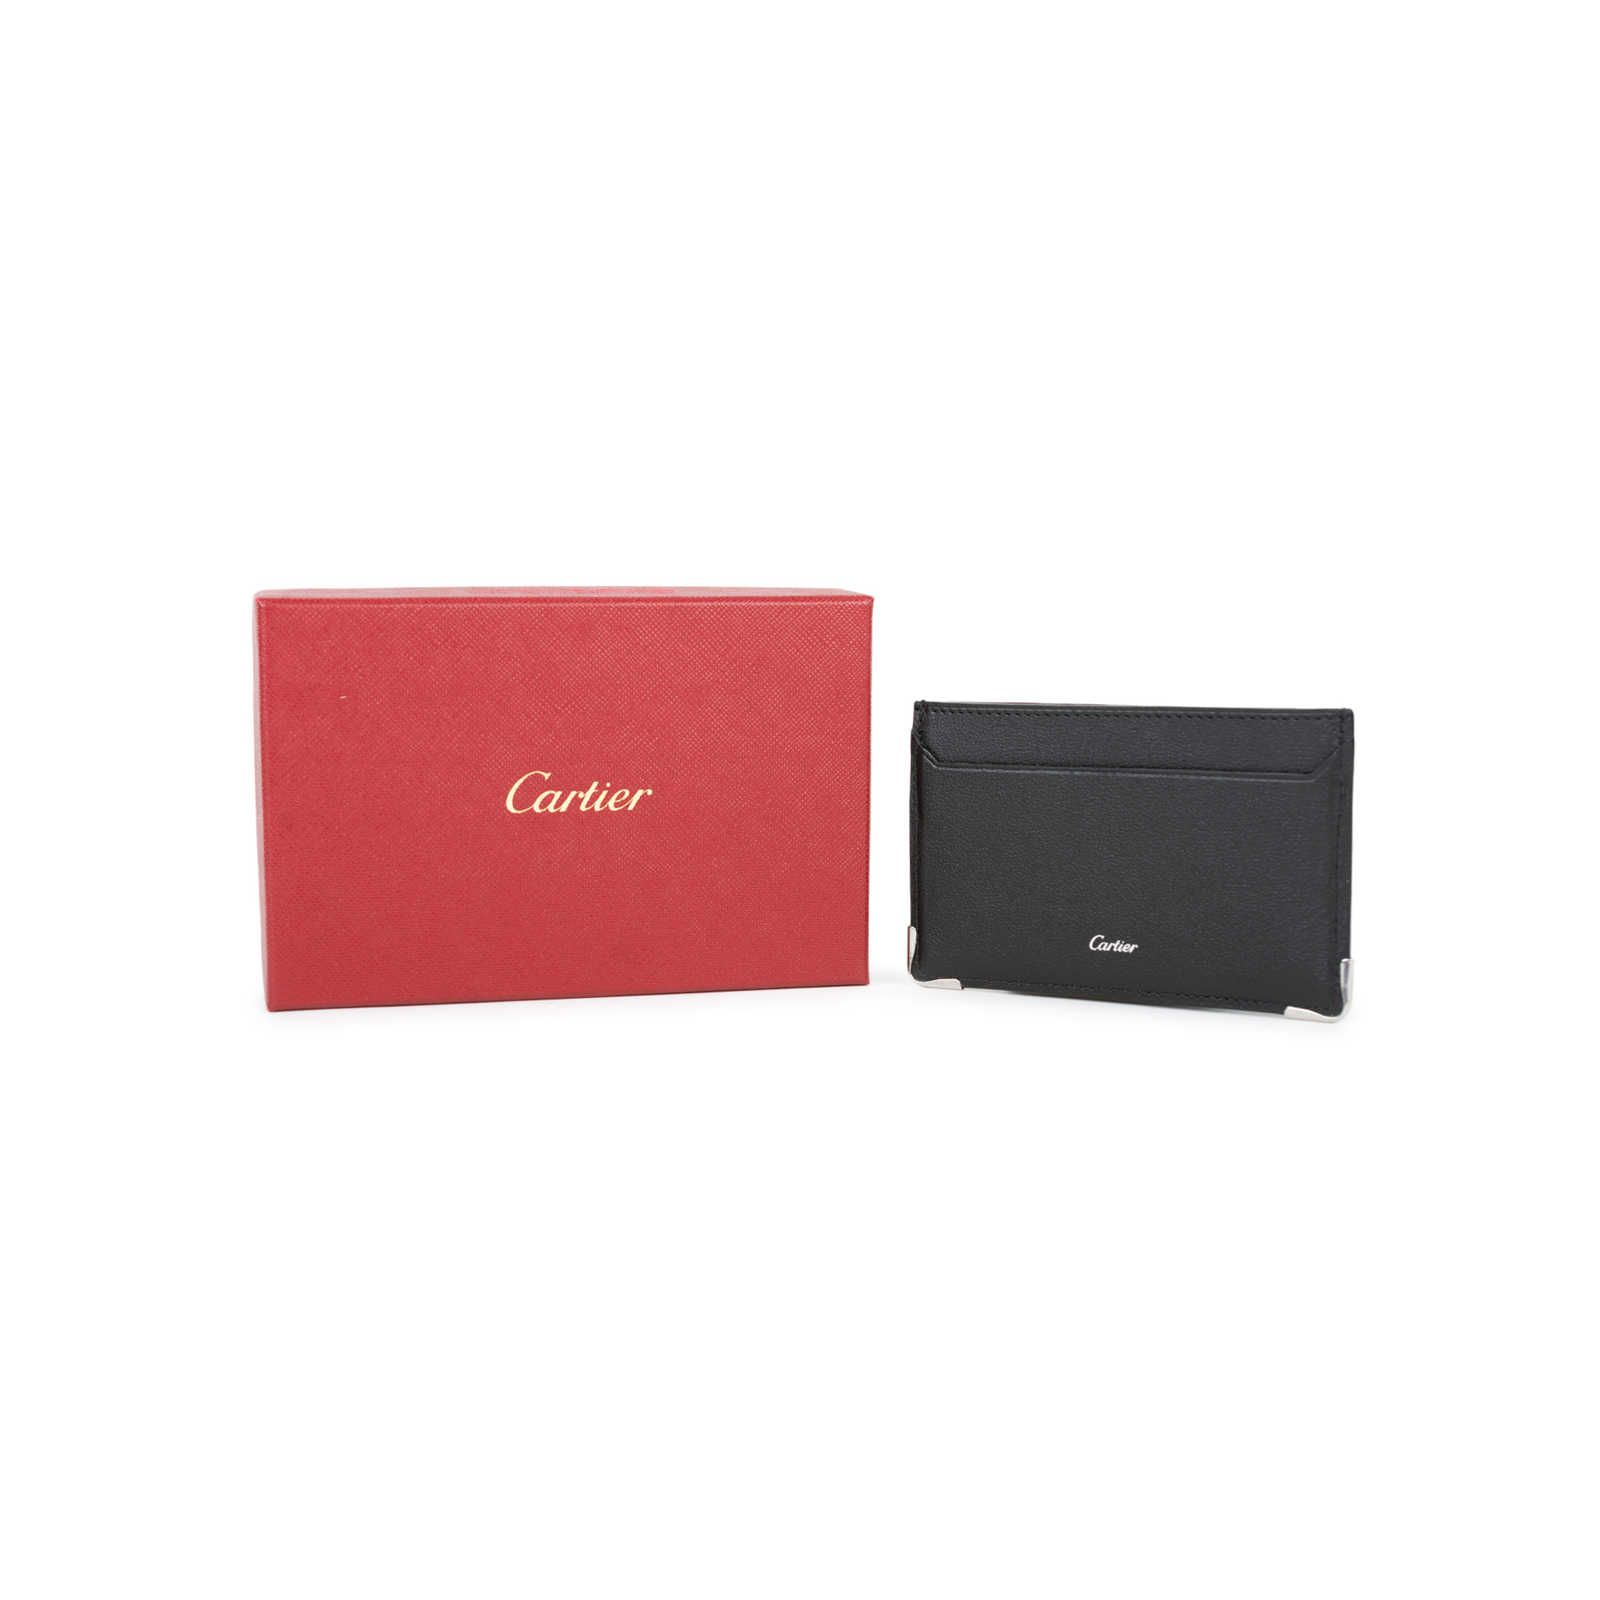 Cartier Logo - Authentic Pre Owned Cartier Logo Cardholder (PSS-356-00017) | THE ...